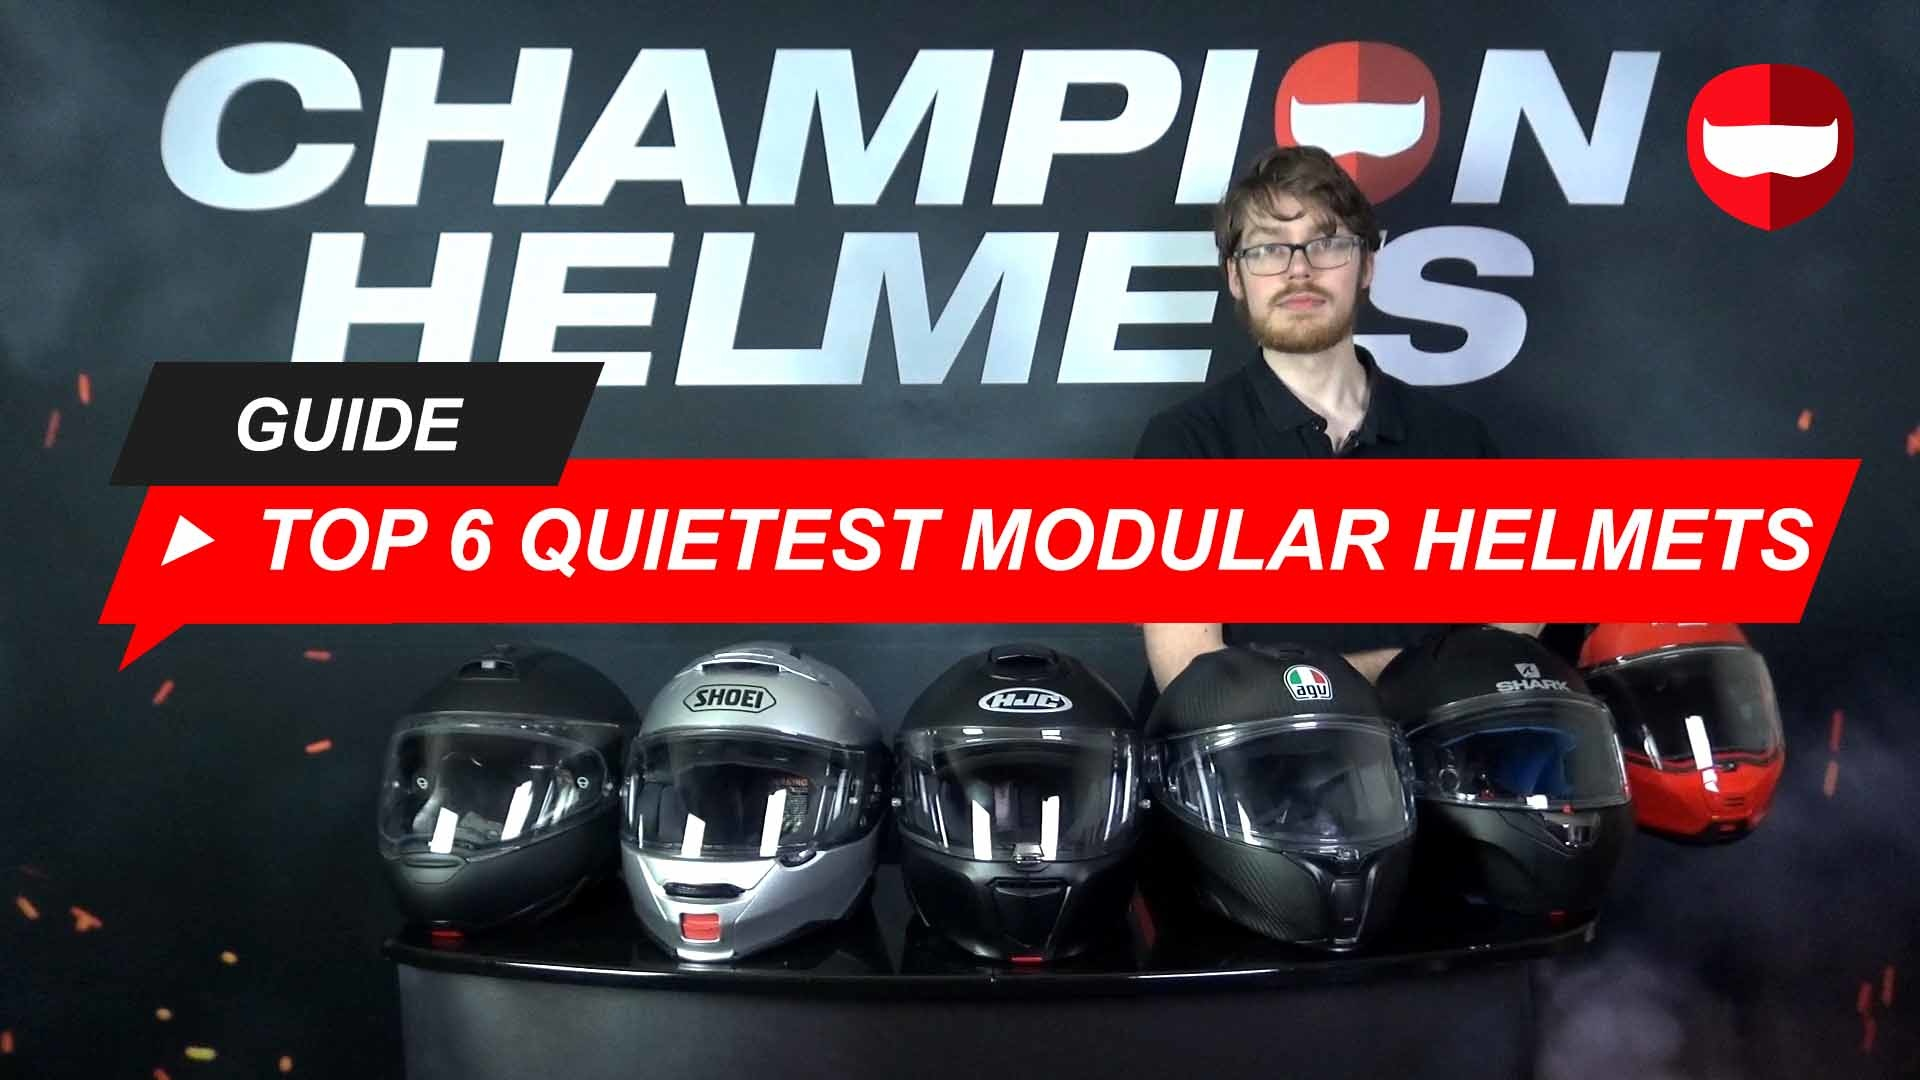 Top 6 Quietest Modular Helmets 2020 Guide and Video